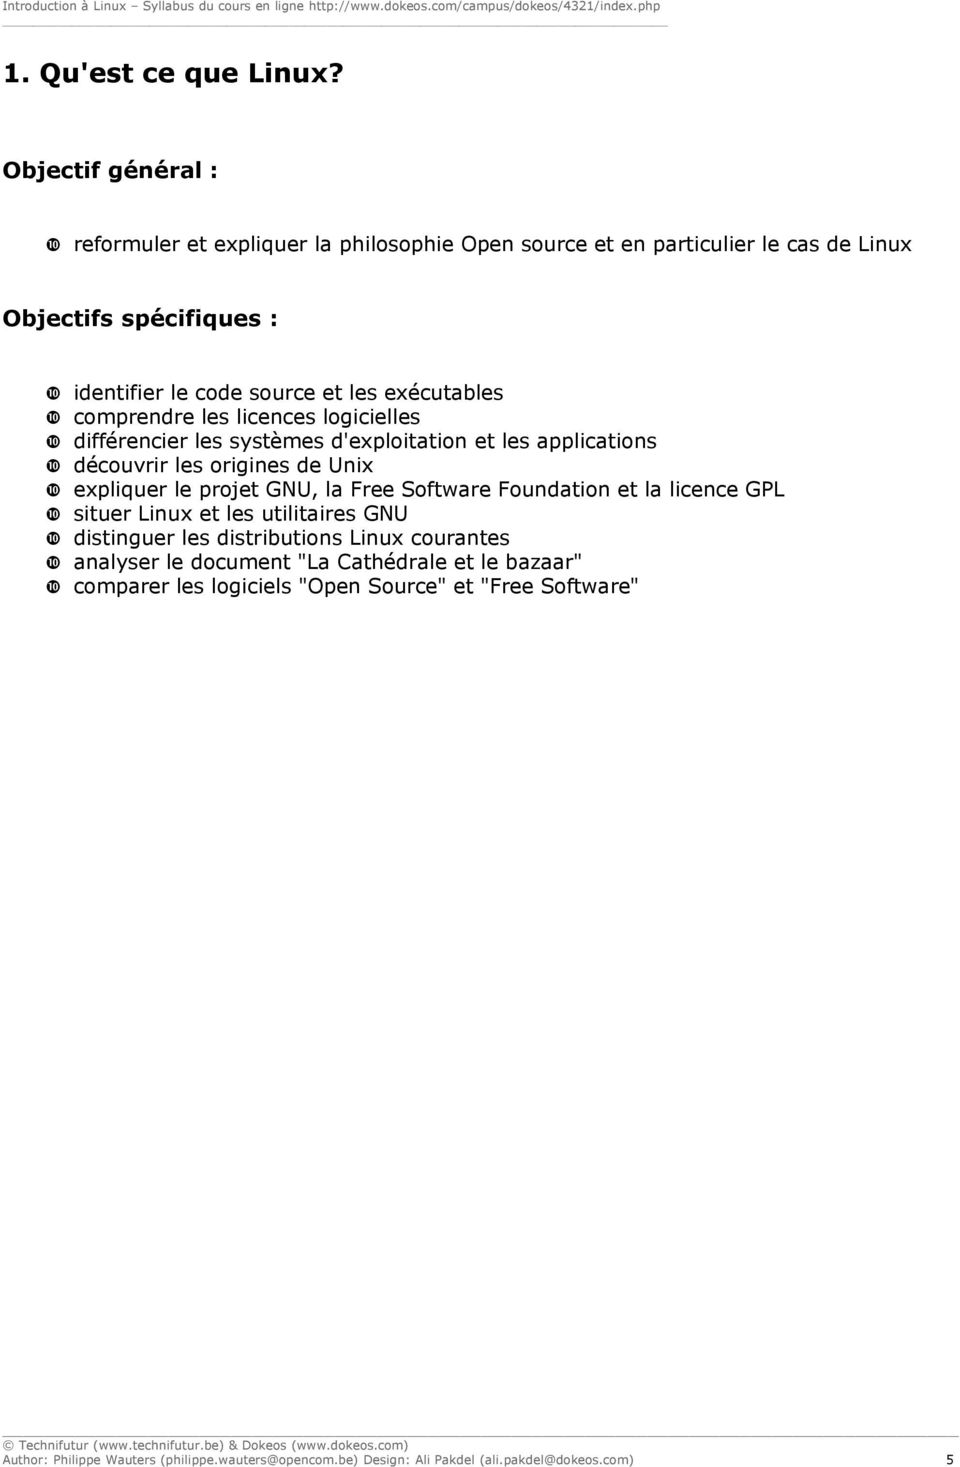 introduction to linux pdf free download